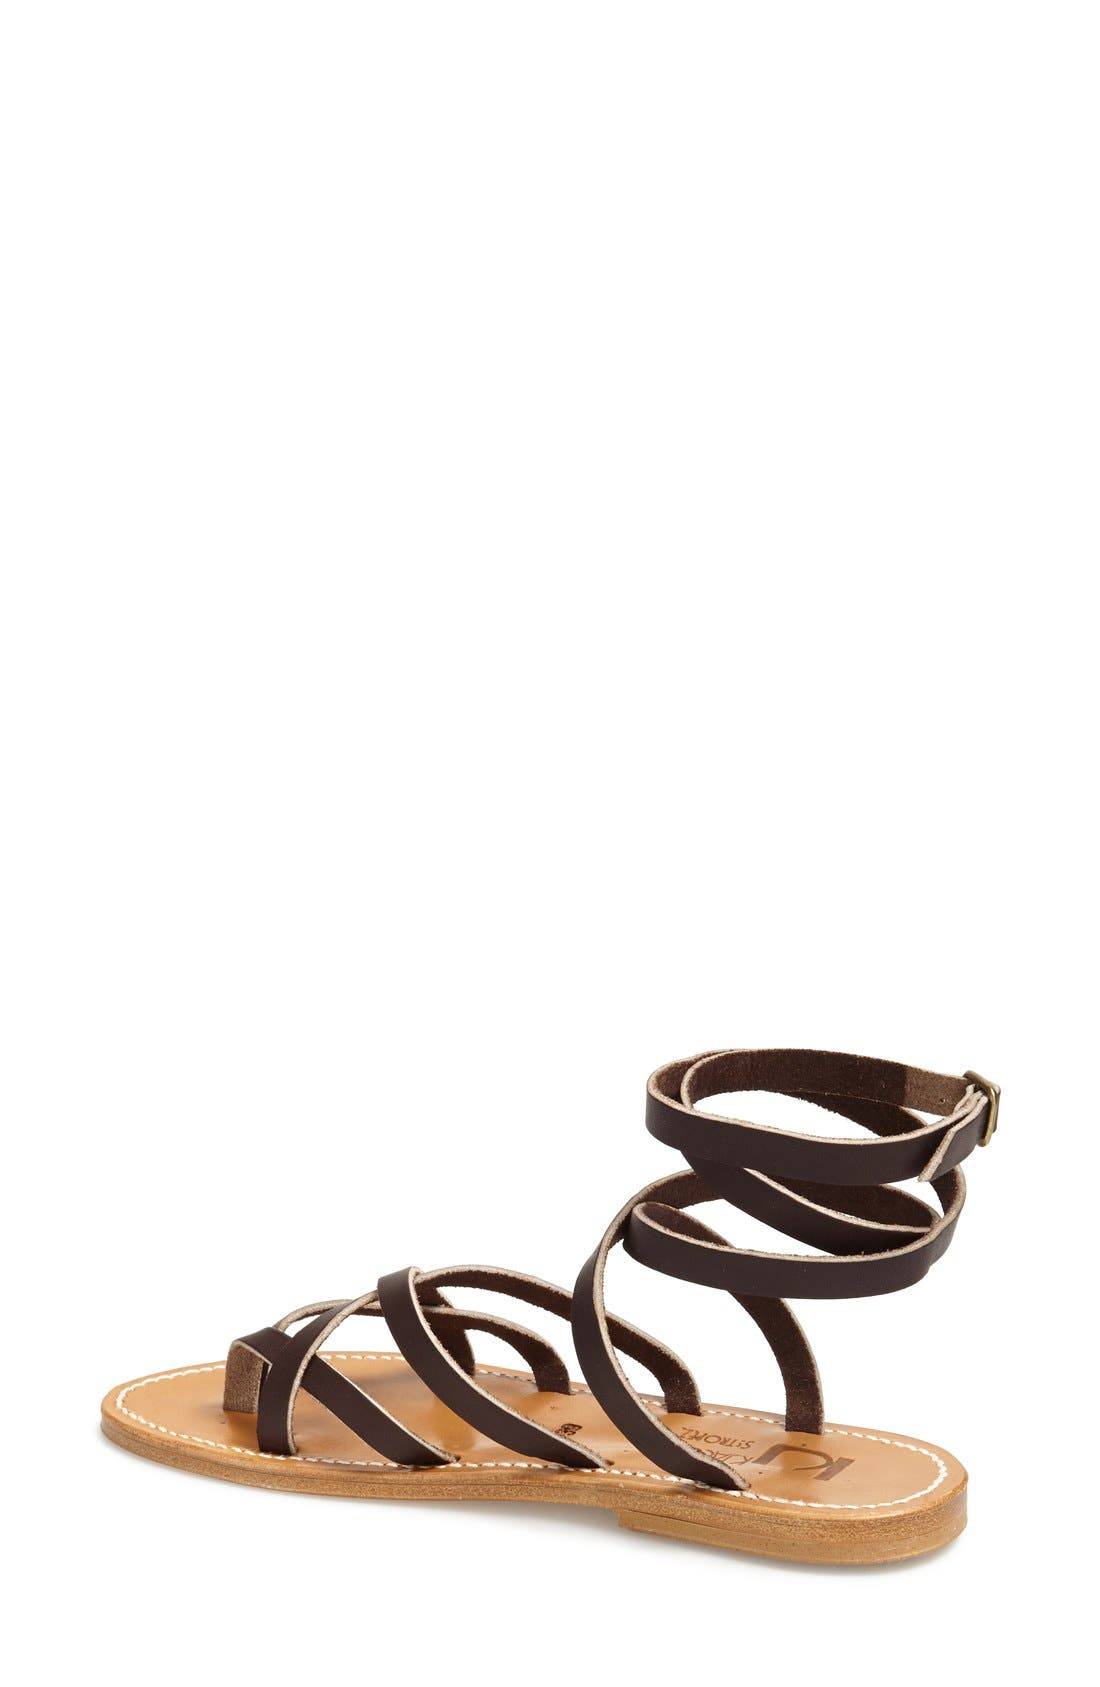 Alternate Image 2  - K.Jacques St. Tropez 'Zenobie' Ankle Wrap Sandal (Women)